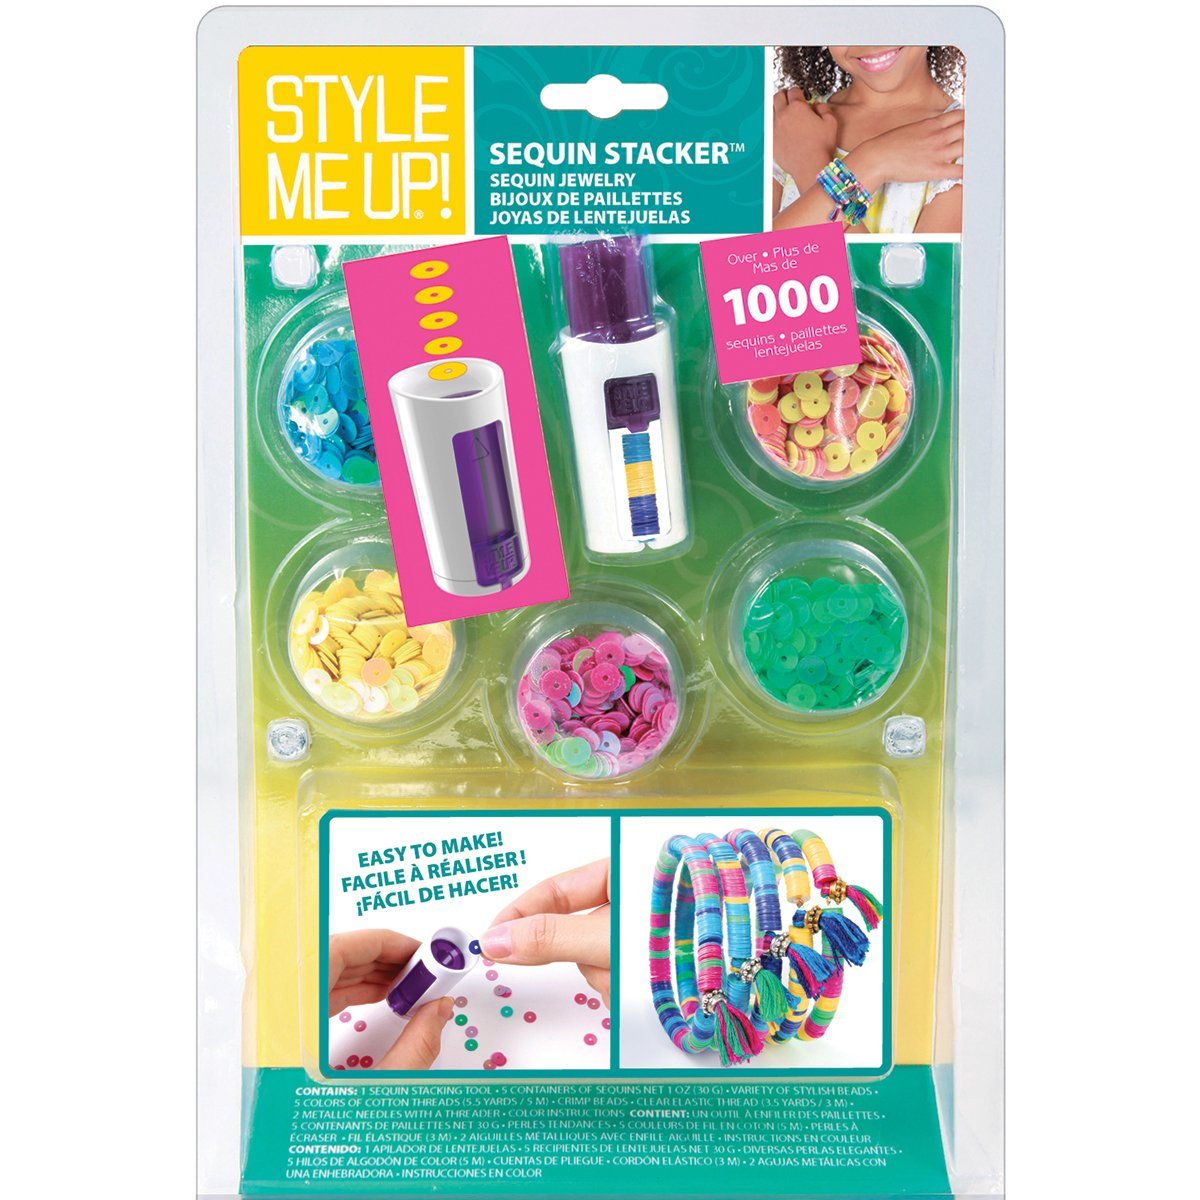 Style Me Up Sequin Stacker Bracelet Kit, Round-Shaped Sequins